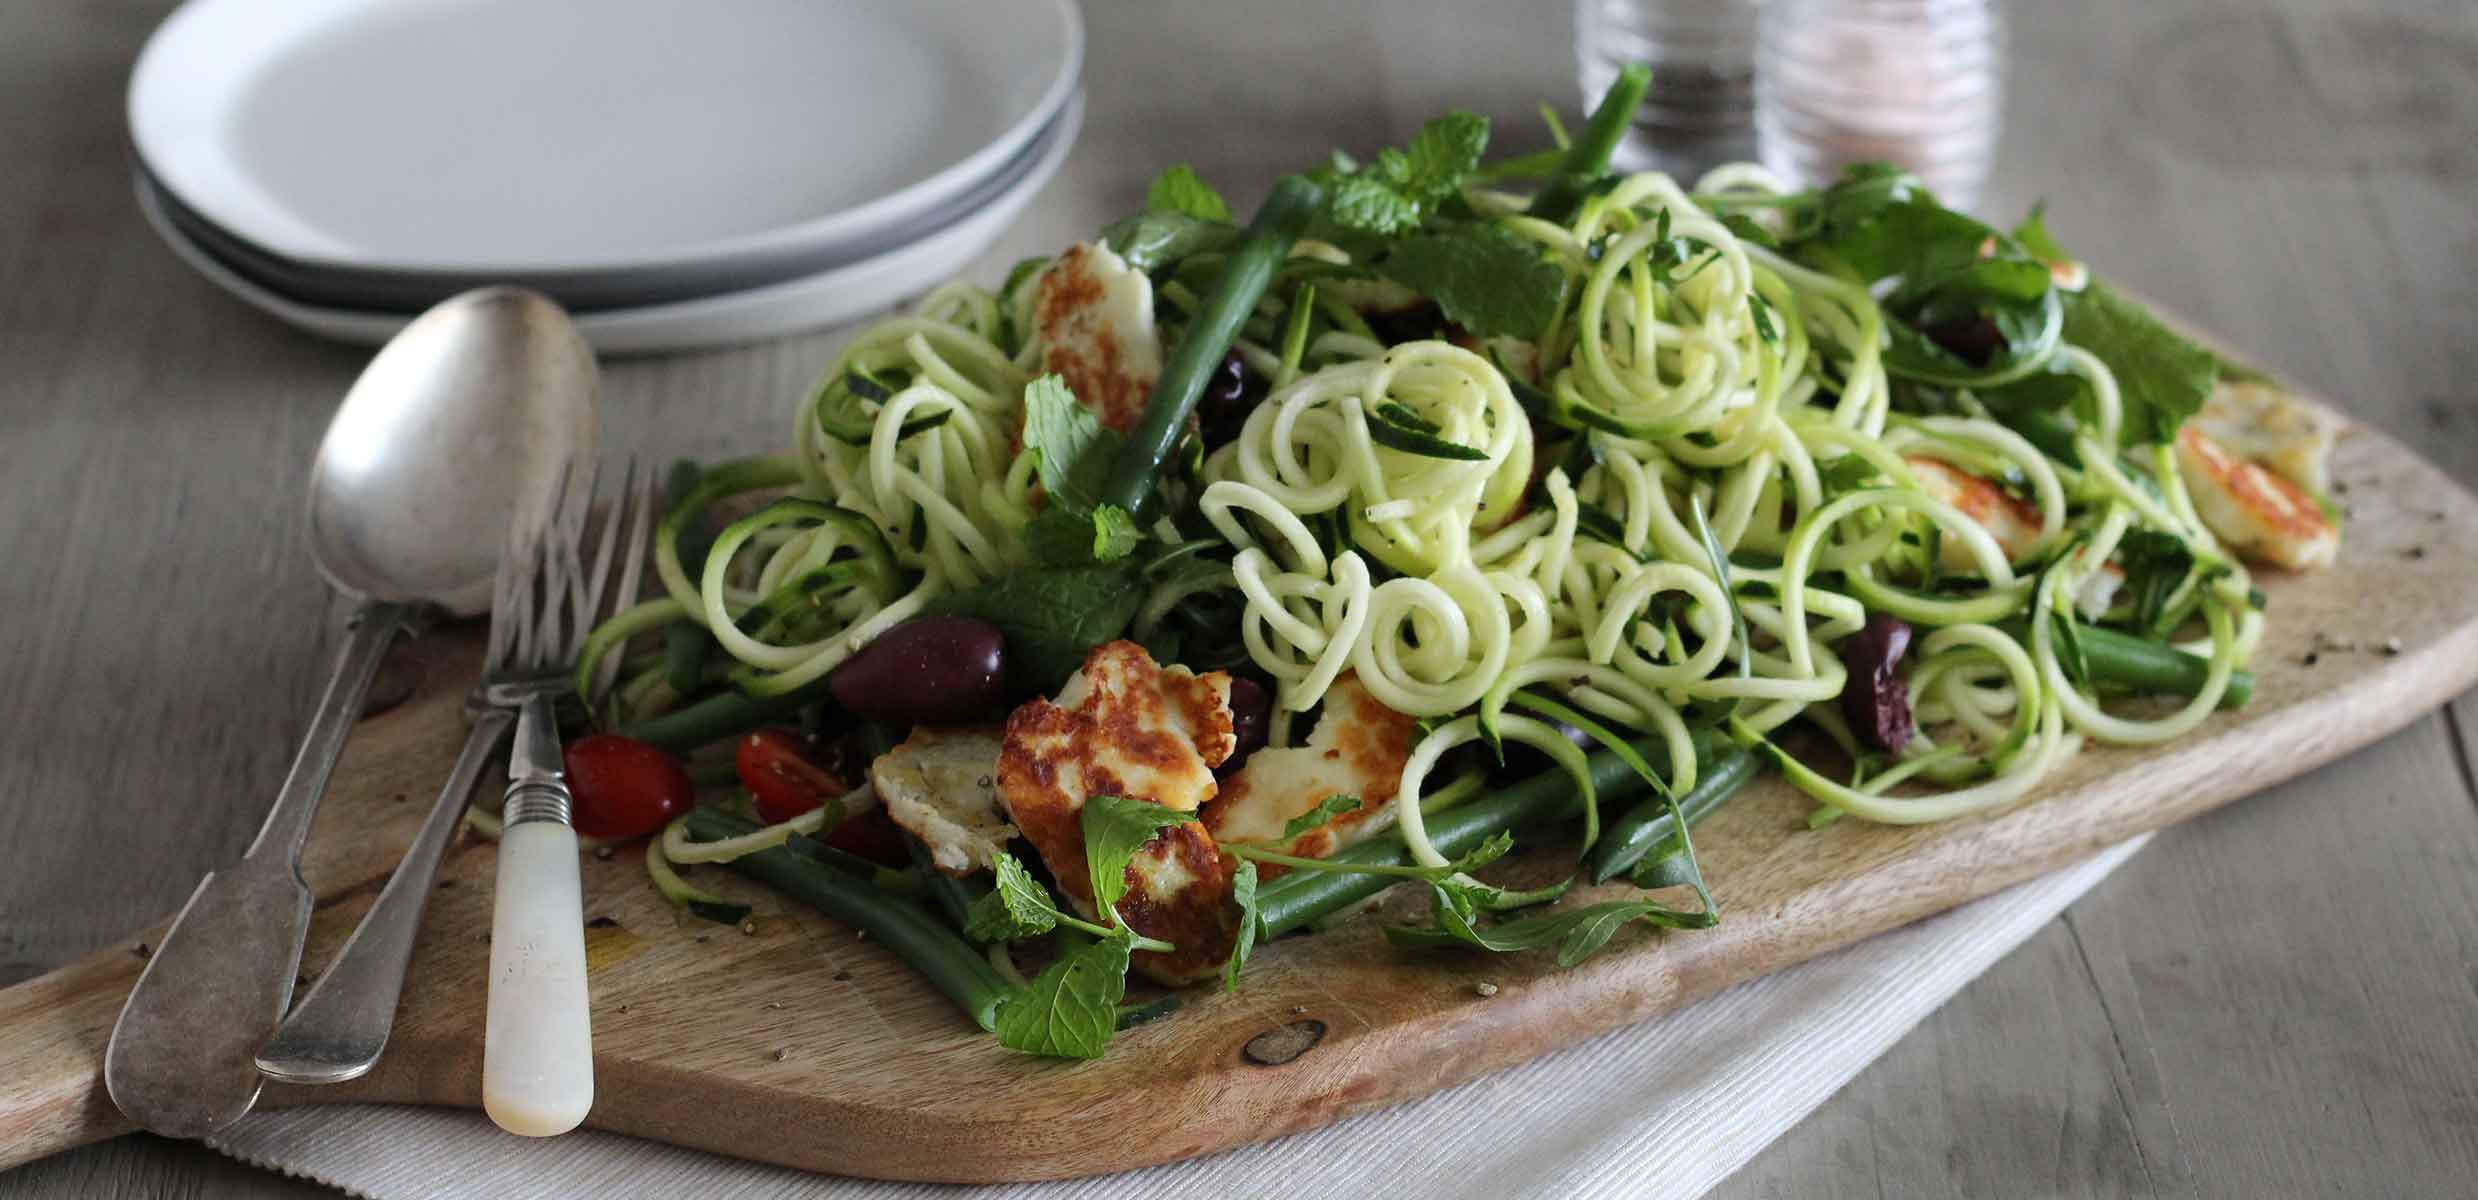 Photography of courgette Spaghetti using courgettes grown on the Barfoots España farm